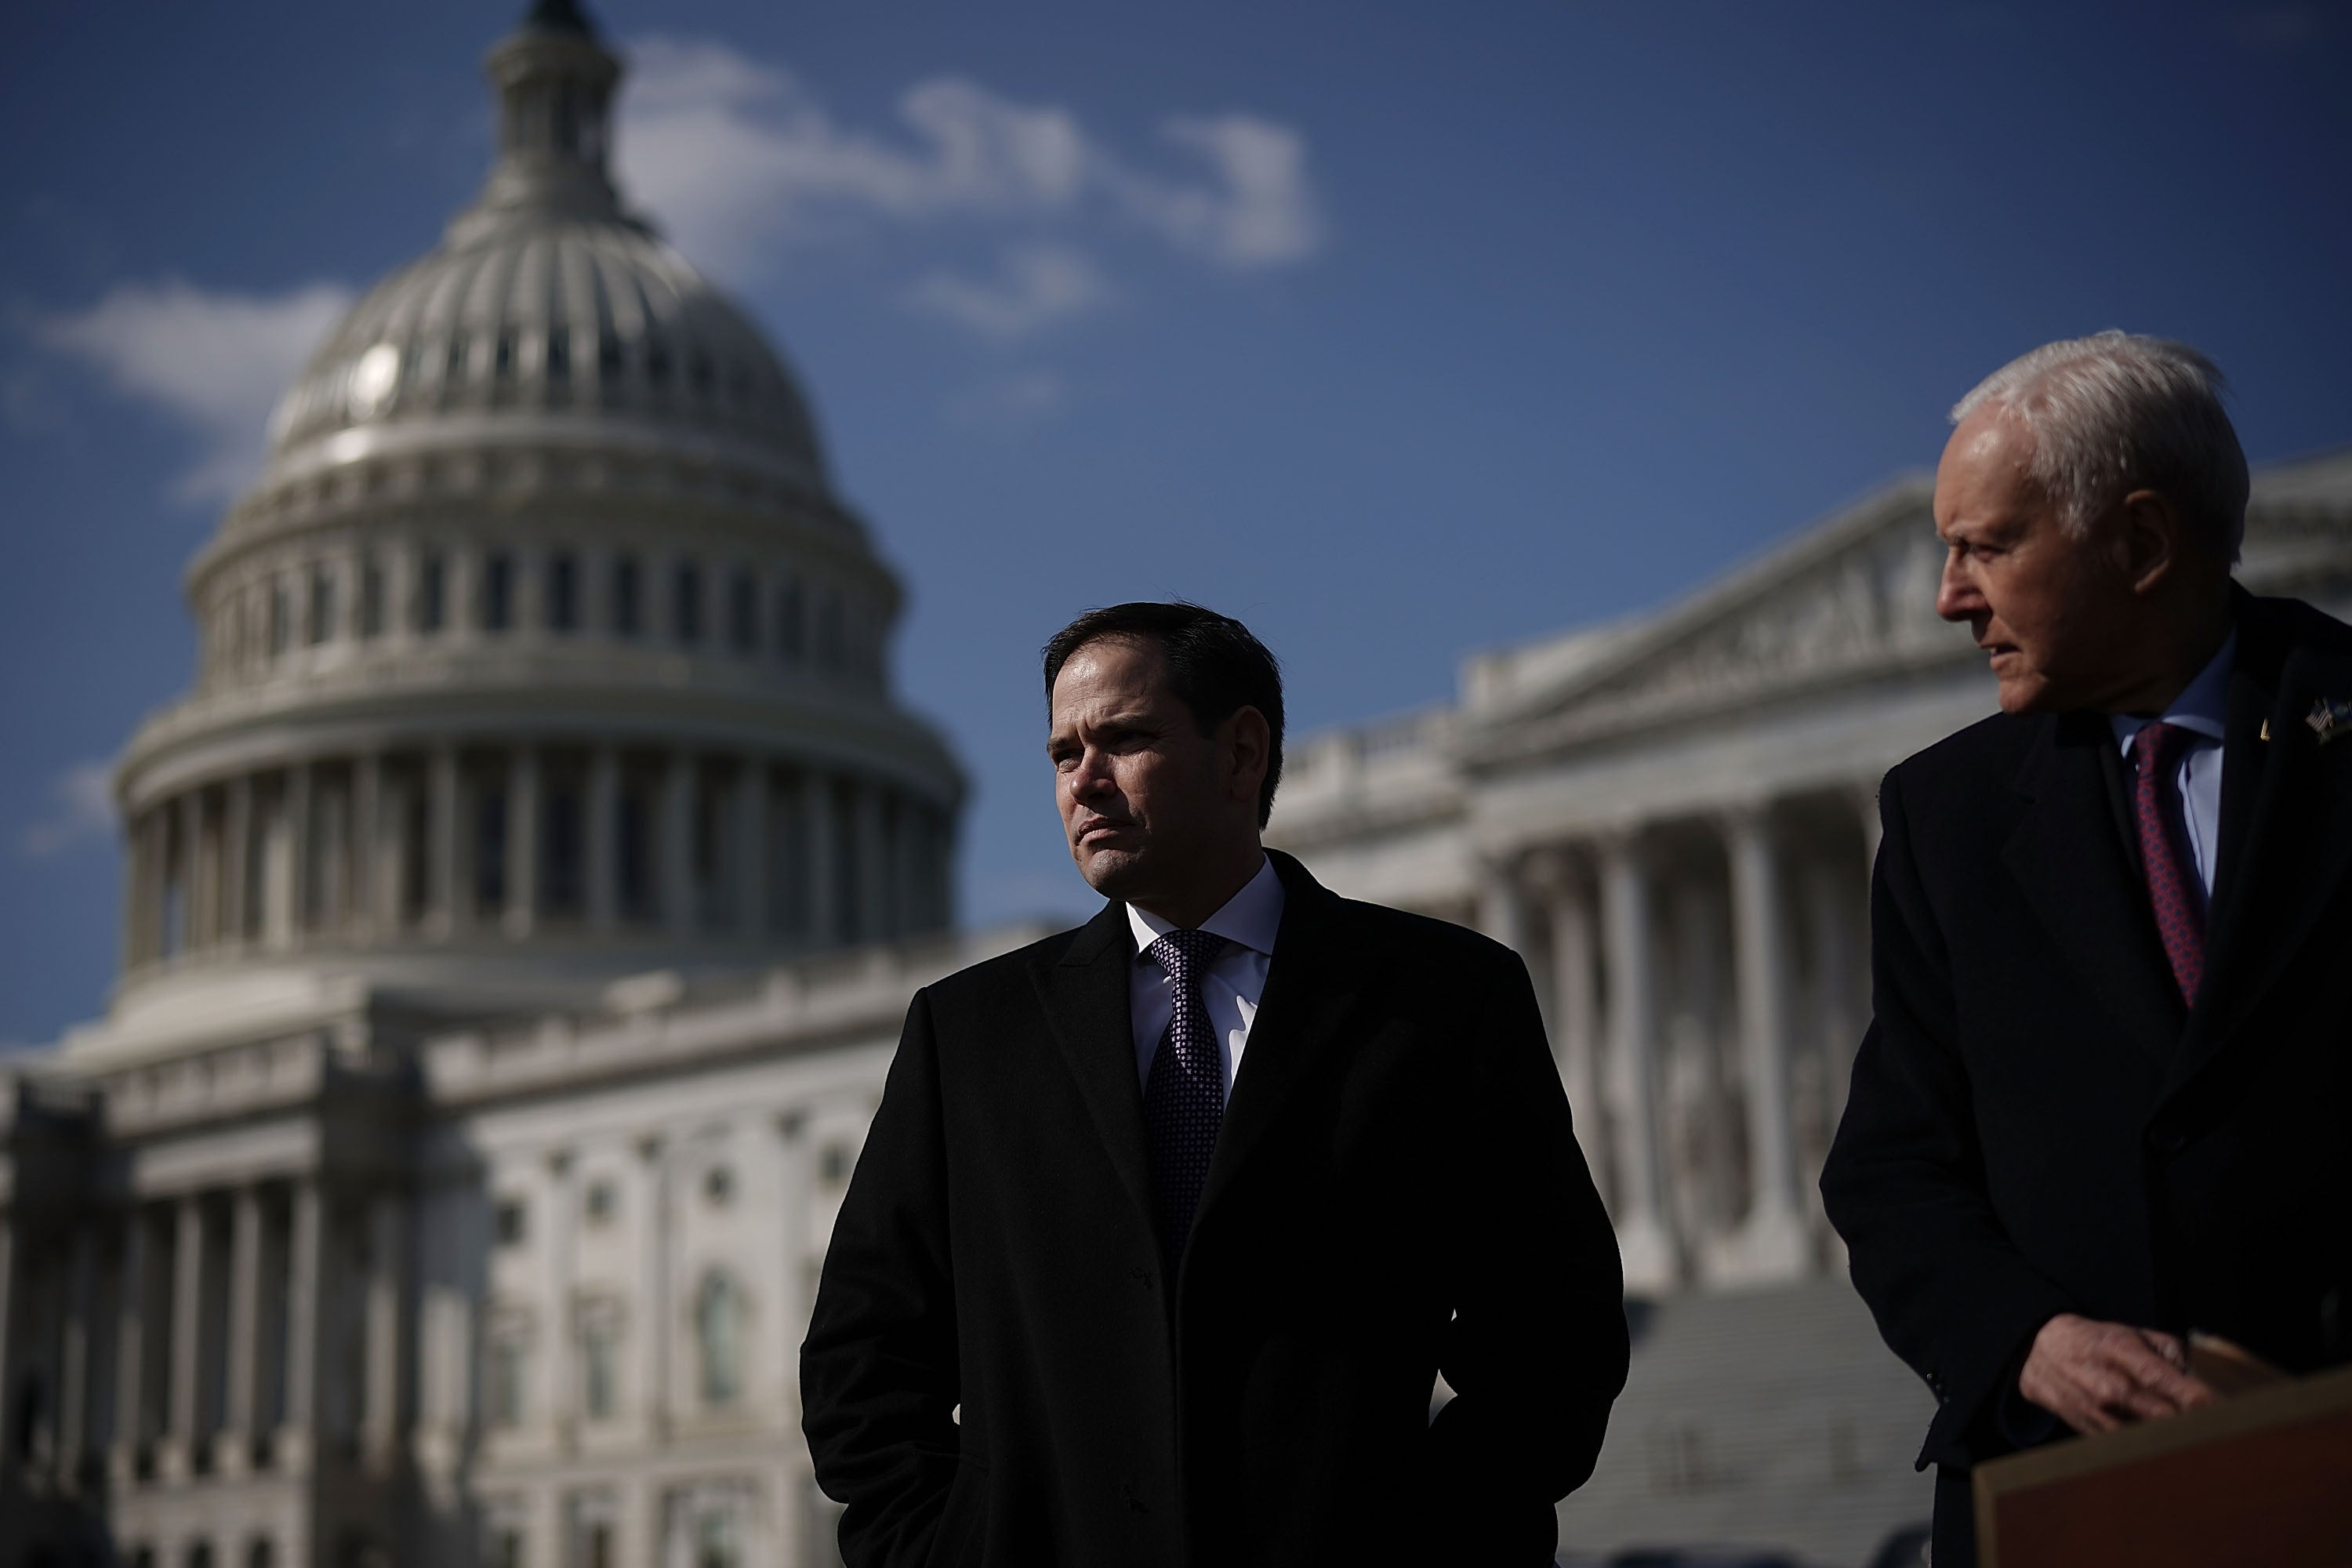 National Hero Marco Rubio Introduces Bill to Make Daylight Savings Time Year-Round